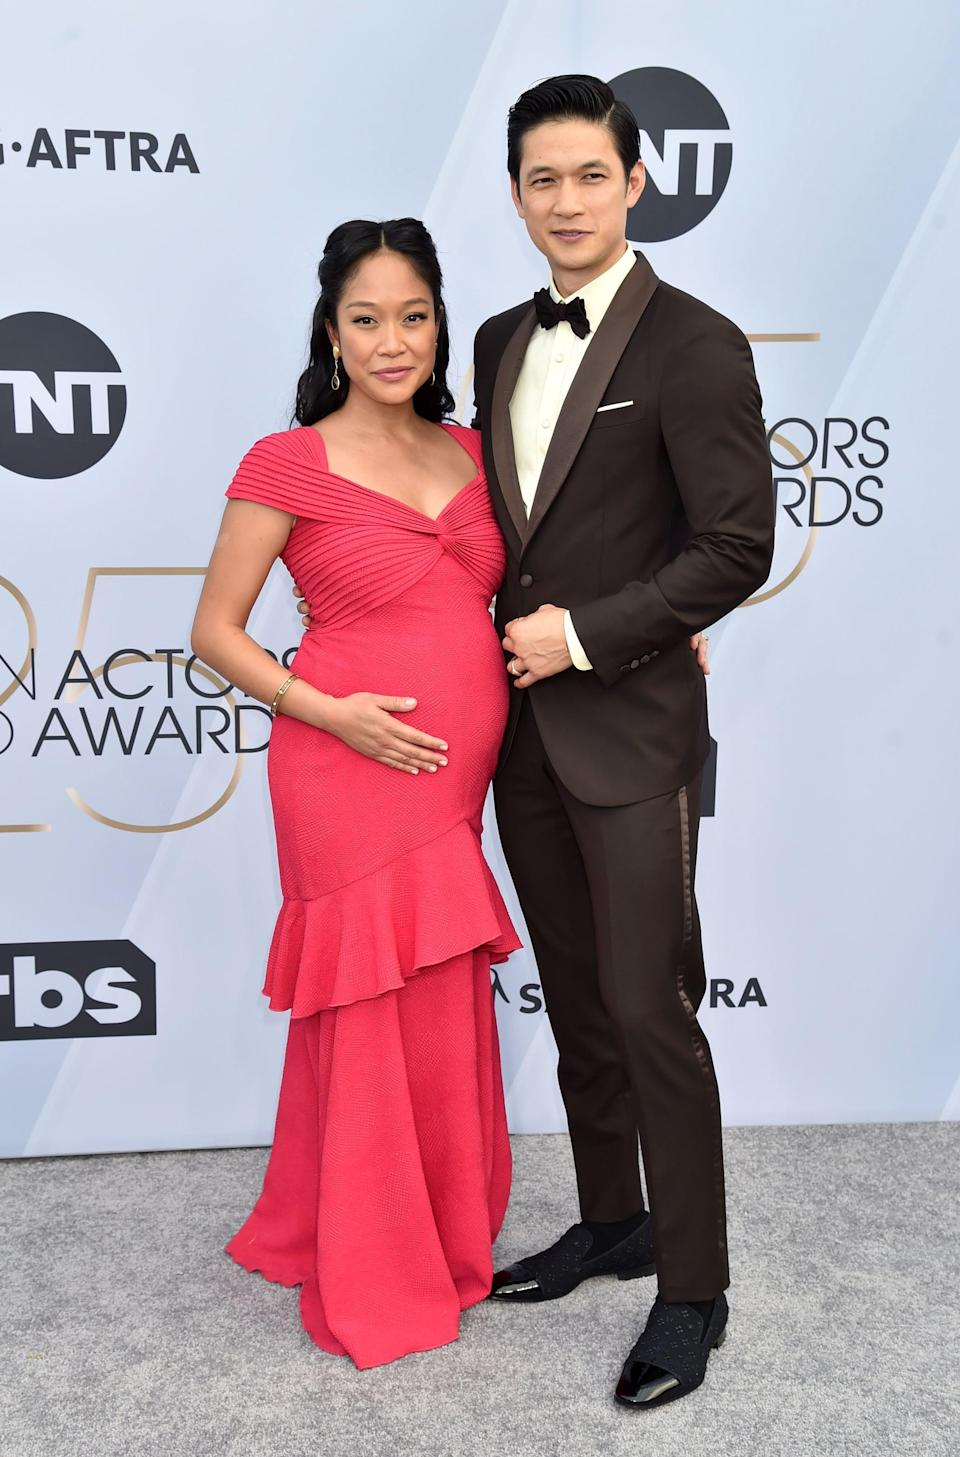 <p>Harry wearing a black suit with a Chopard watch. Shelby wearing a pink ruffled gown.</p>